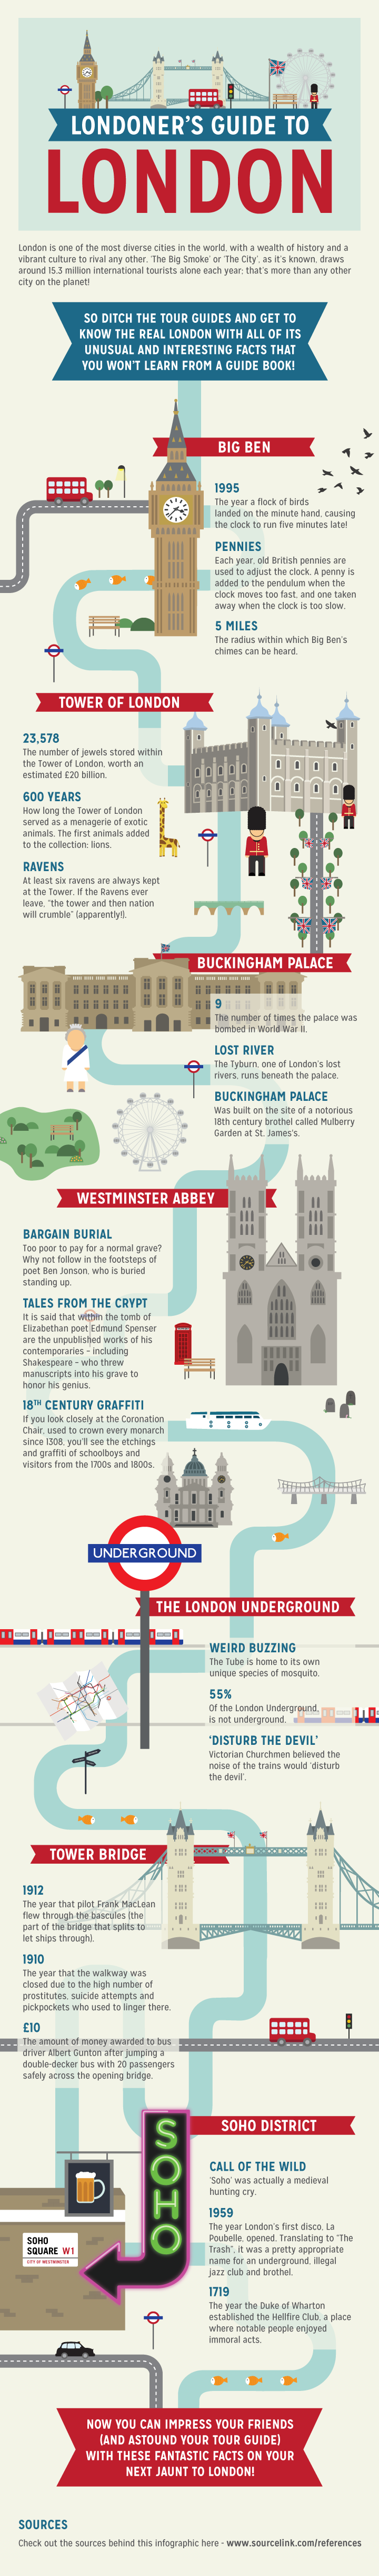 London Confidential-Infographic